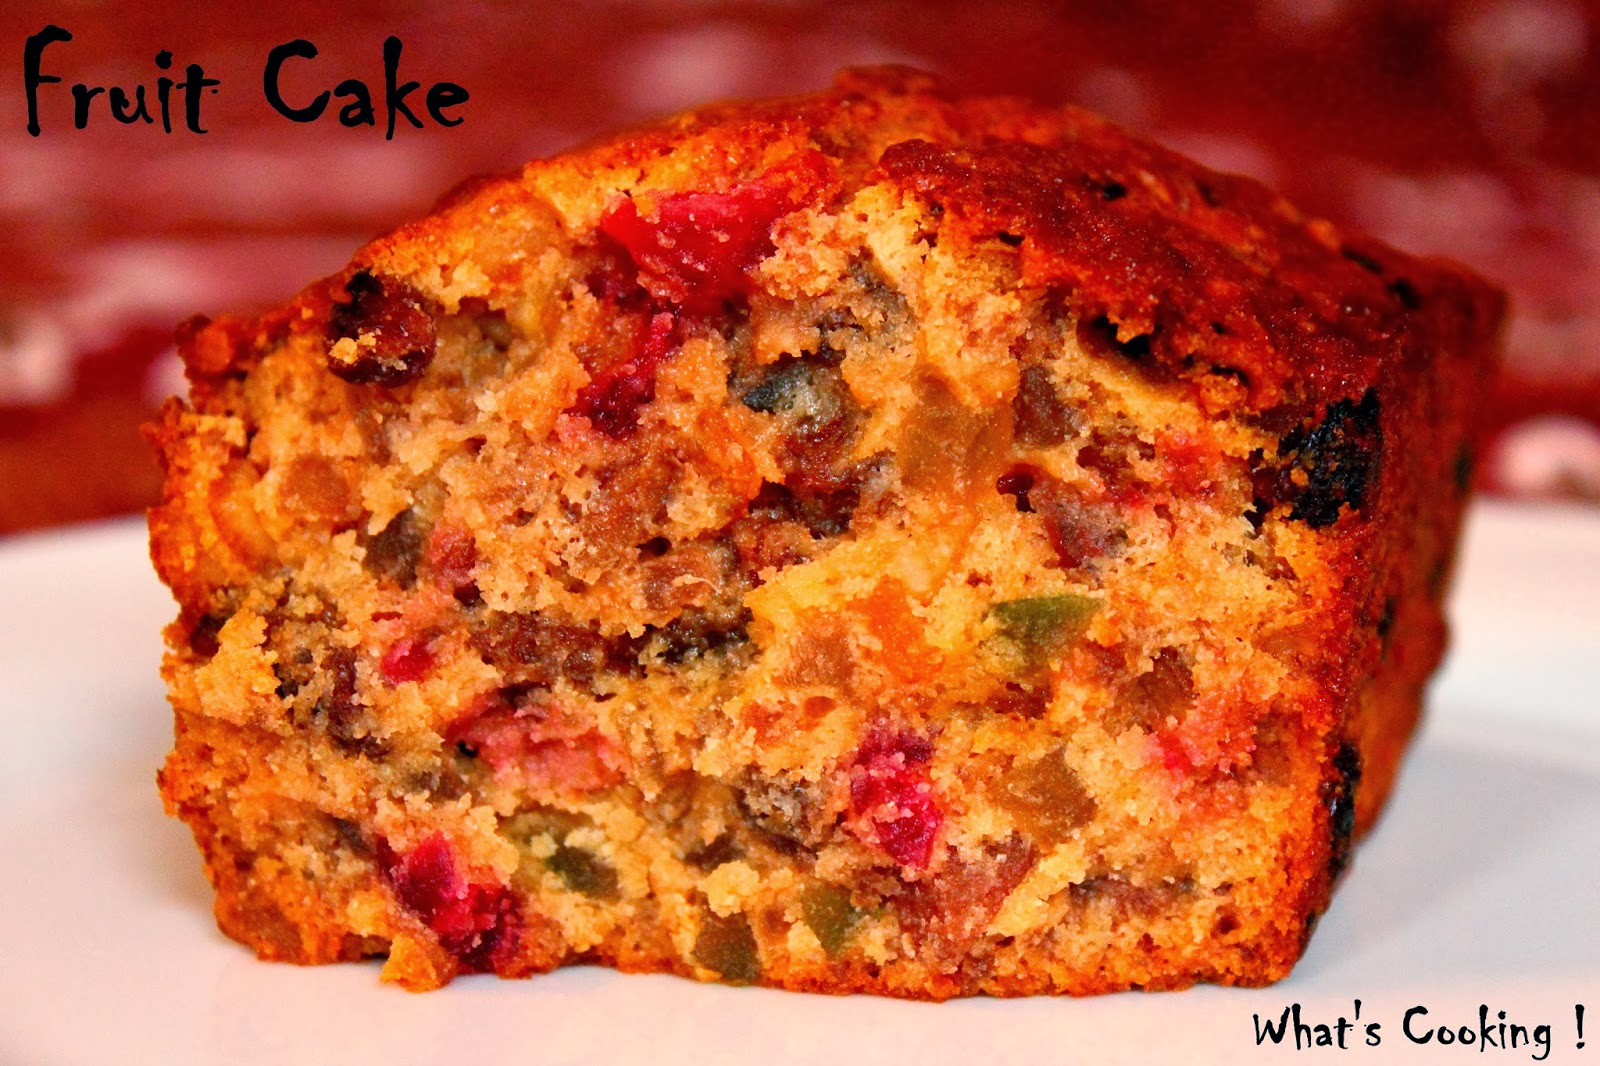 What's Cooking!: Christmas Fruit Cake